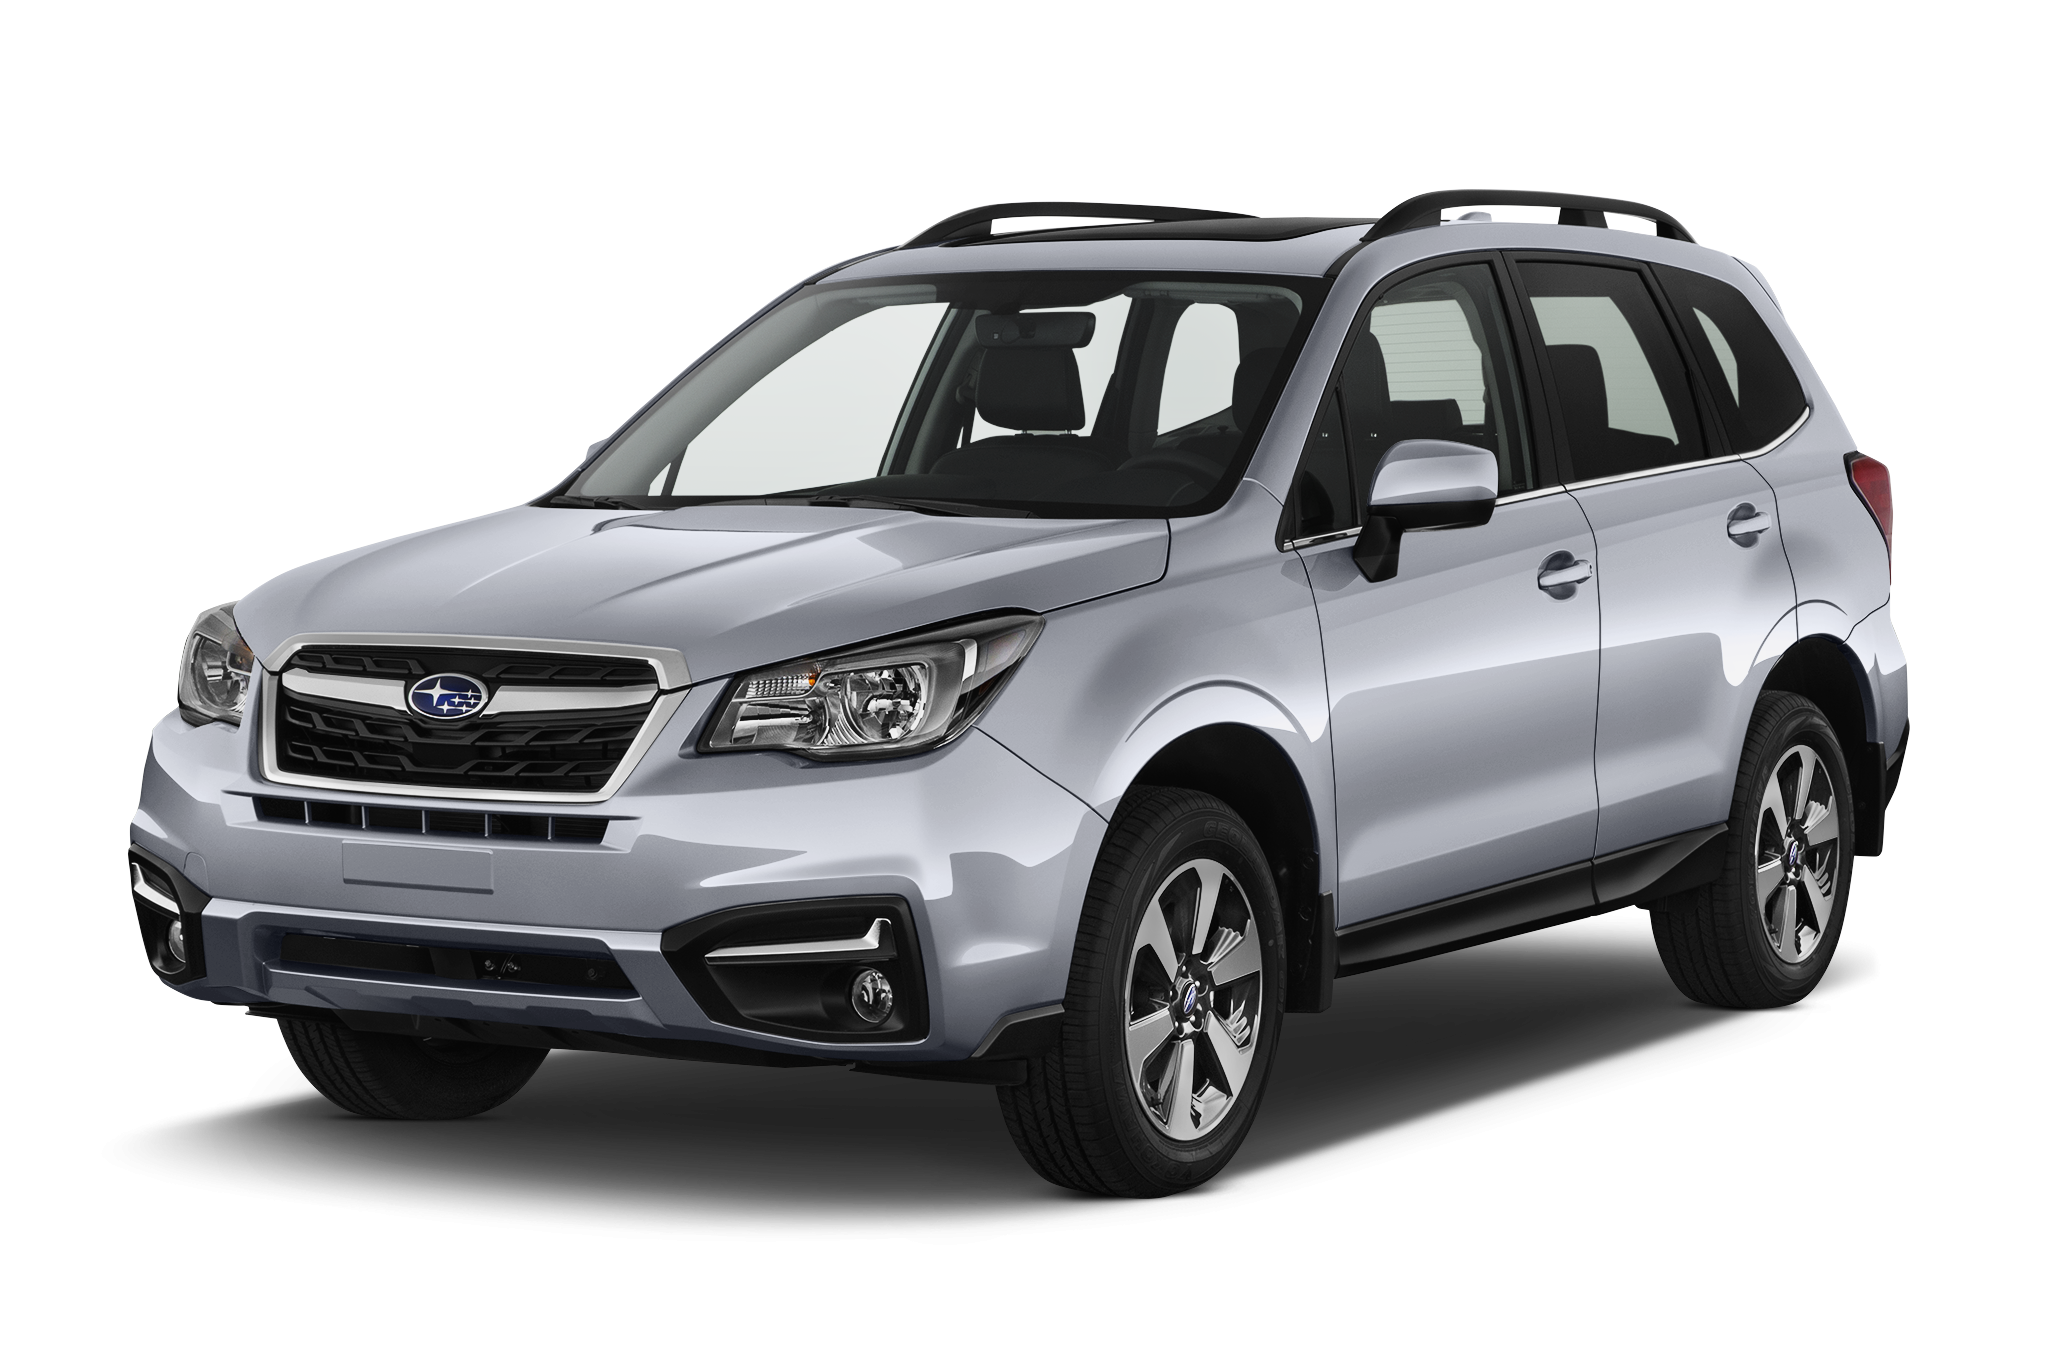 Msa5M1702A – Owner's Manual – 2017 Subaru Forester | Subaru - 2016 Subaru Forester Premium Owners Manual